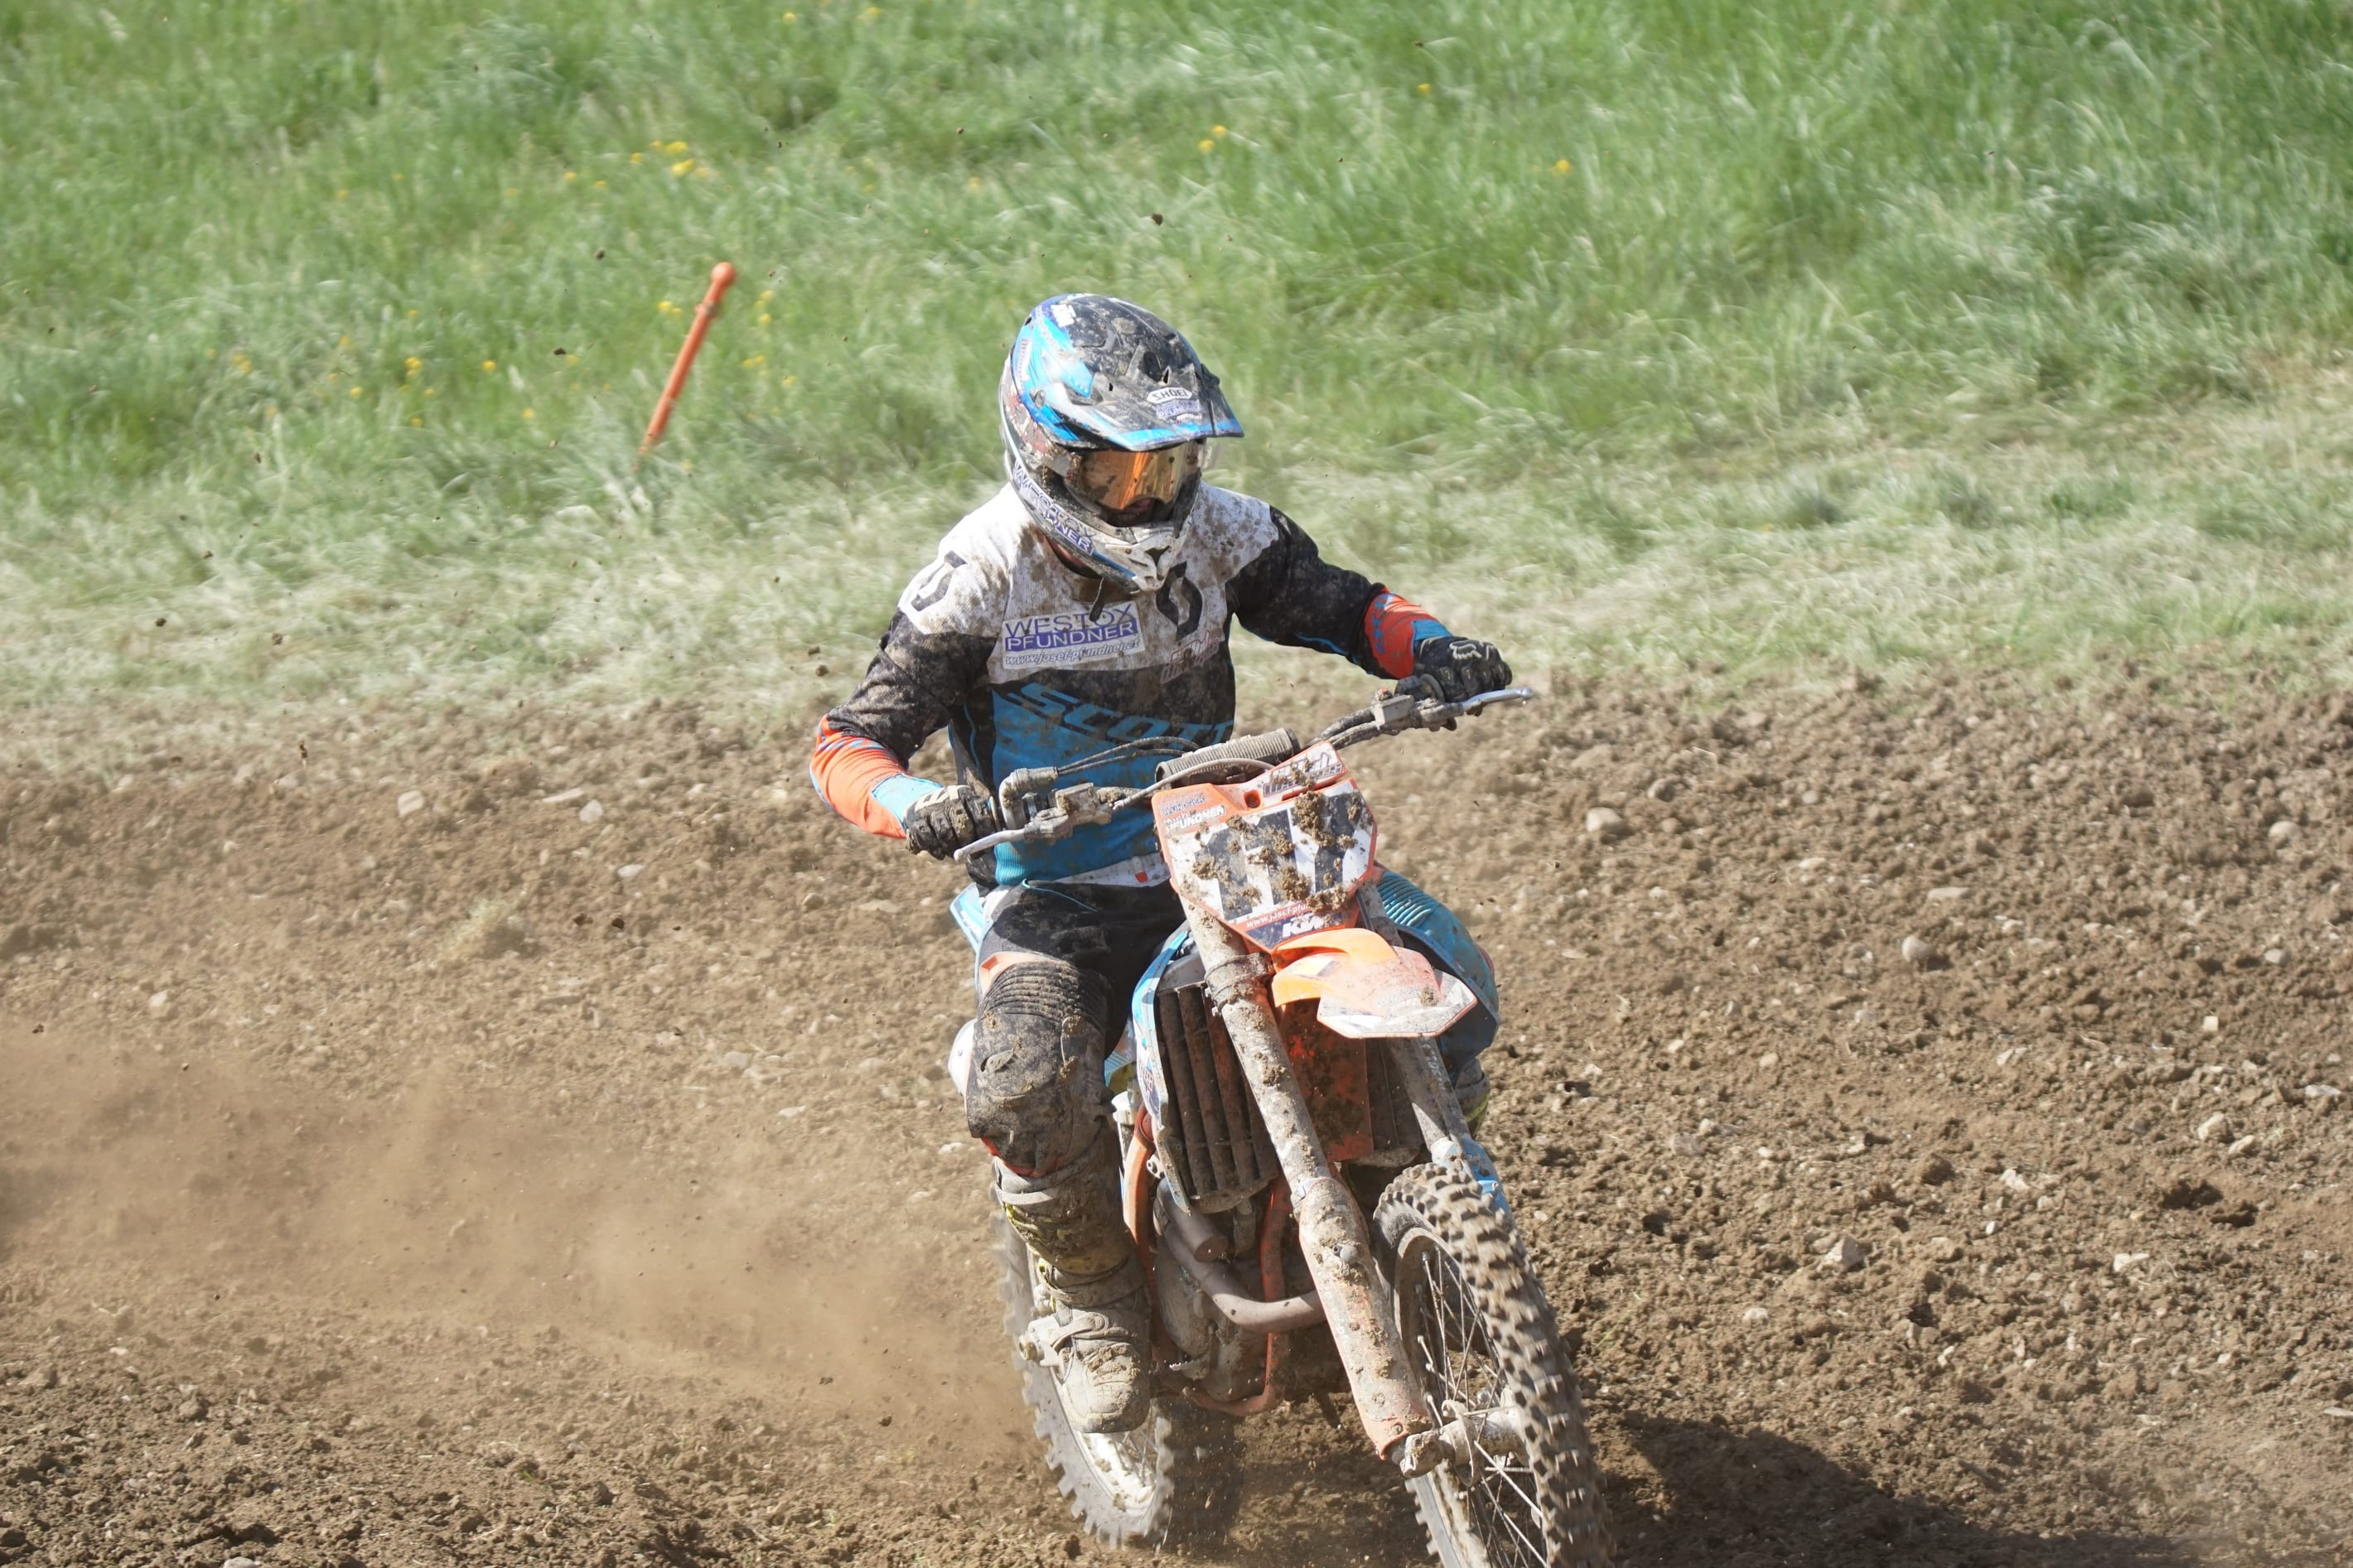 DSC 823_Moto Cross Sittendorf Teil1 am 29.04.2018